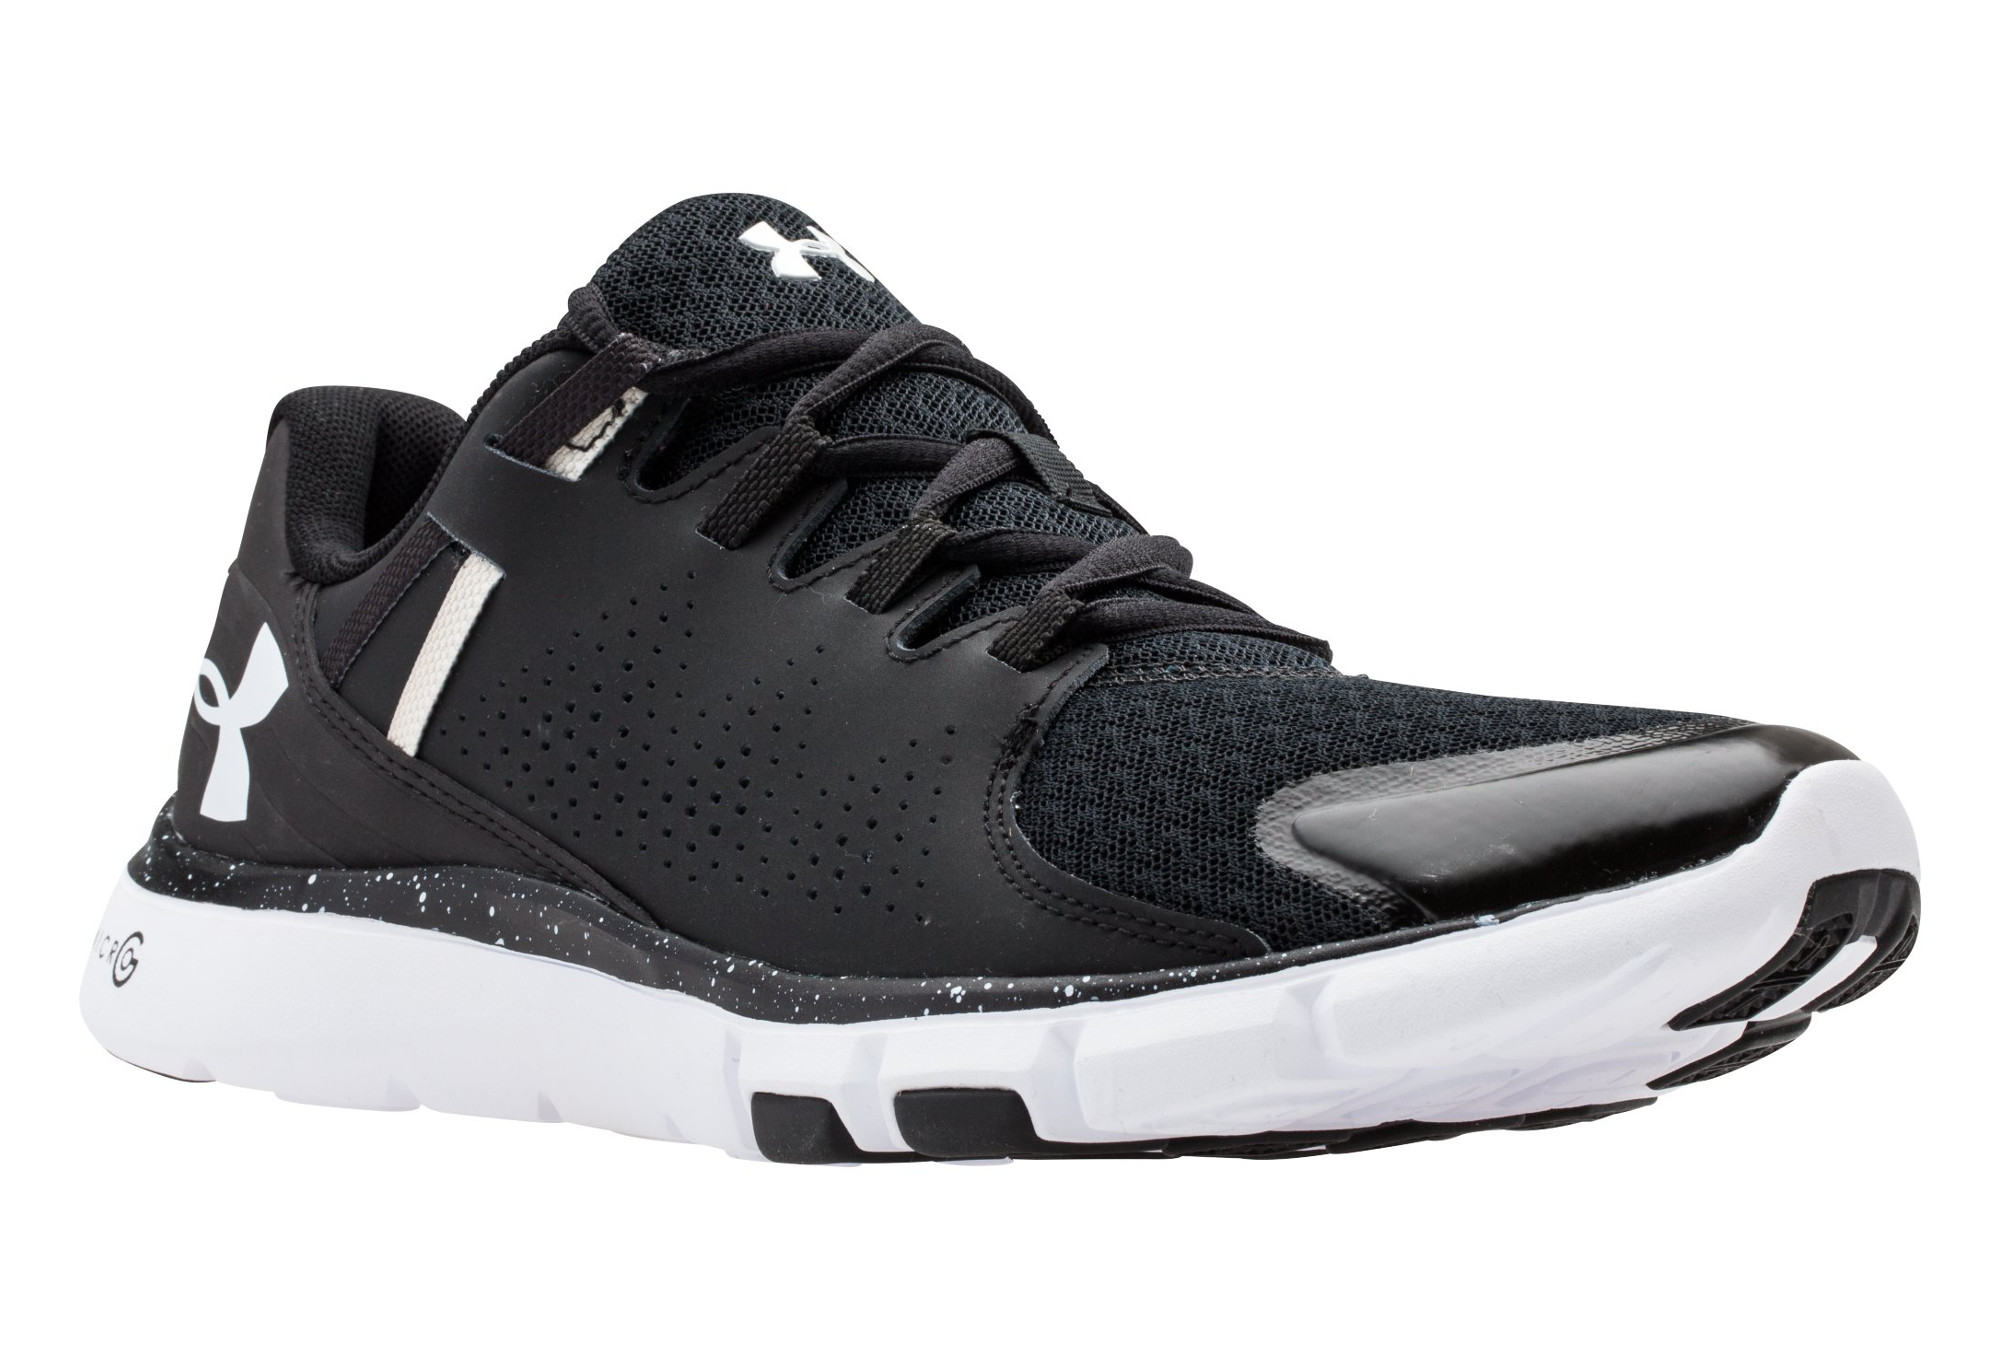 reputable site 19a86 5f2c8 UNDER ARMOUR MICRO G LIMITLESS Pair of Shoes Black White Women